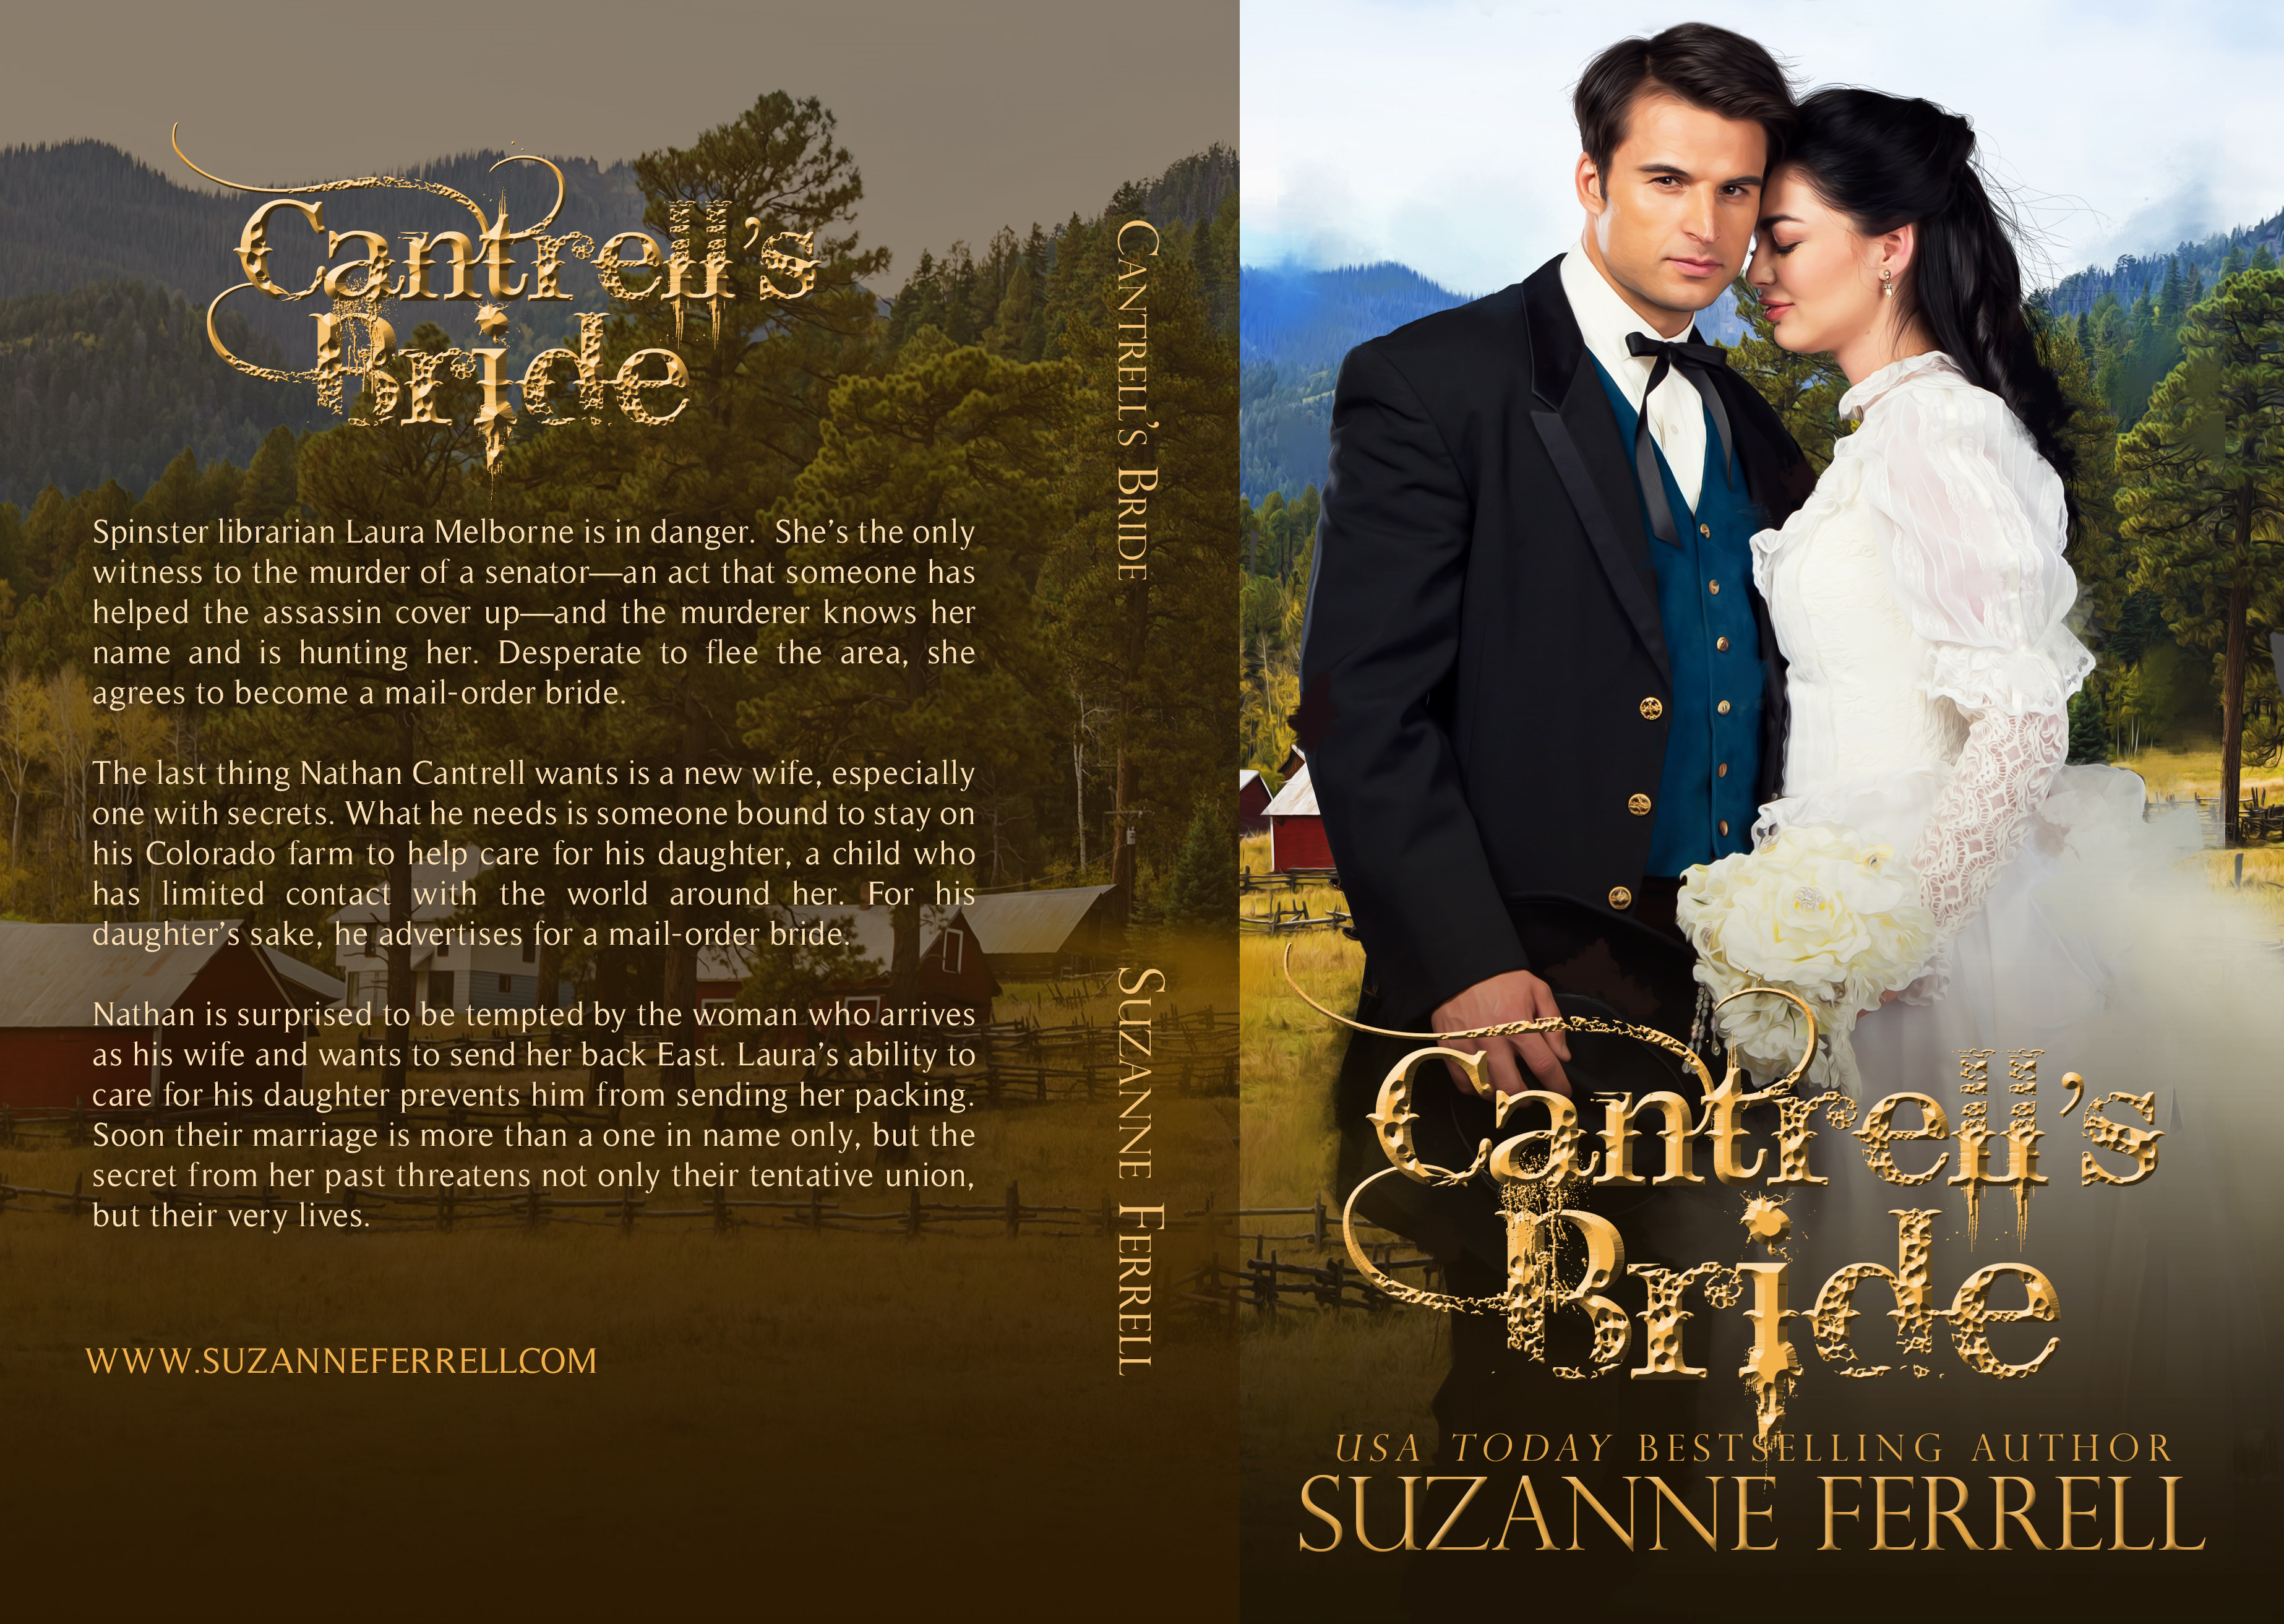 Cantrell's Bride full 5_5 by 8_5 at 464 pages